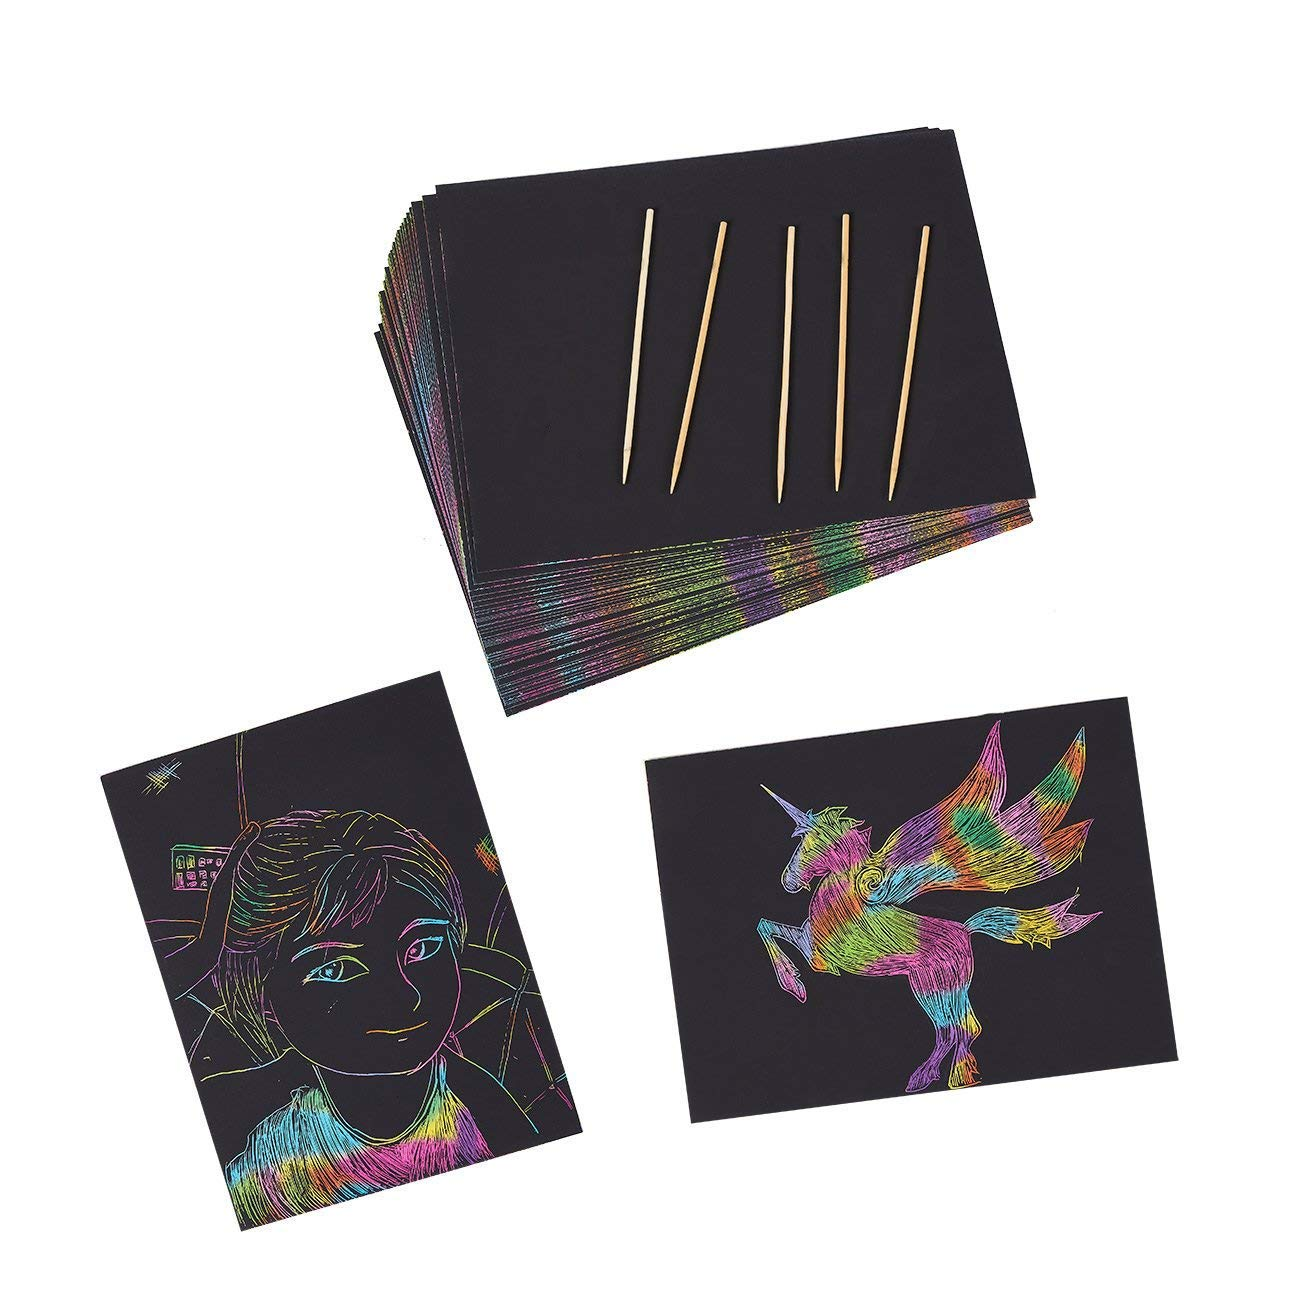 Rainbow Scratch Paper with 5 Wooden Stylus Pens - 50-Pack Rainbow Scratch-Off Art Paper, Black Doodle Pad with Rainbow Background, Art Supplies for Kids, 8.25 x 11 Inches